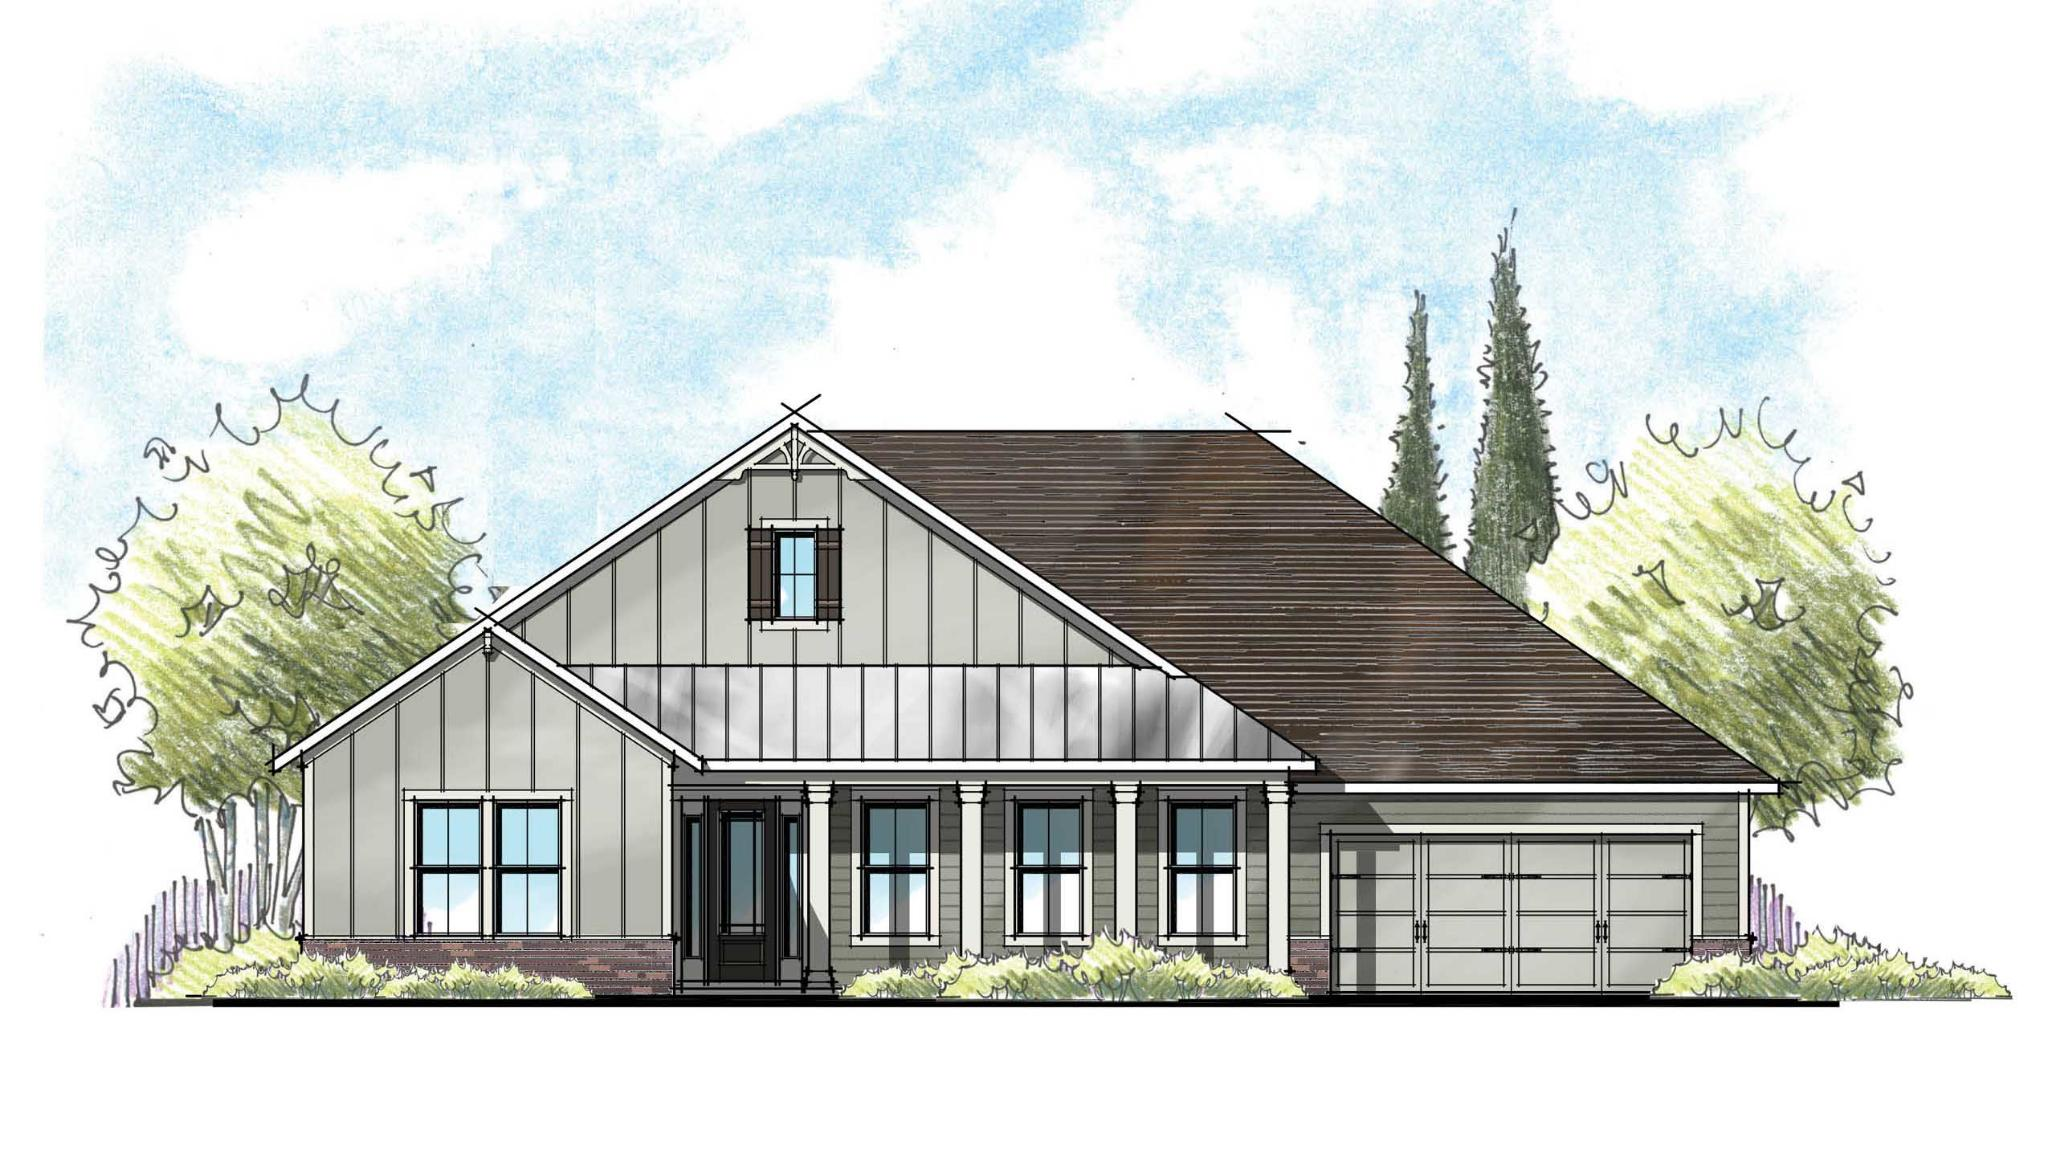 The Monroe Farmhouse Elevation 4